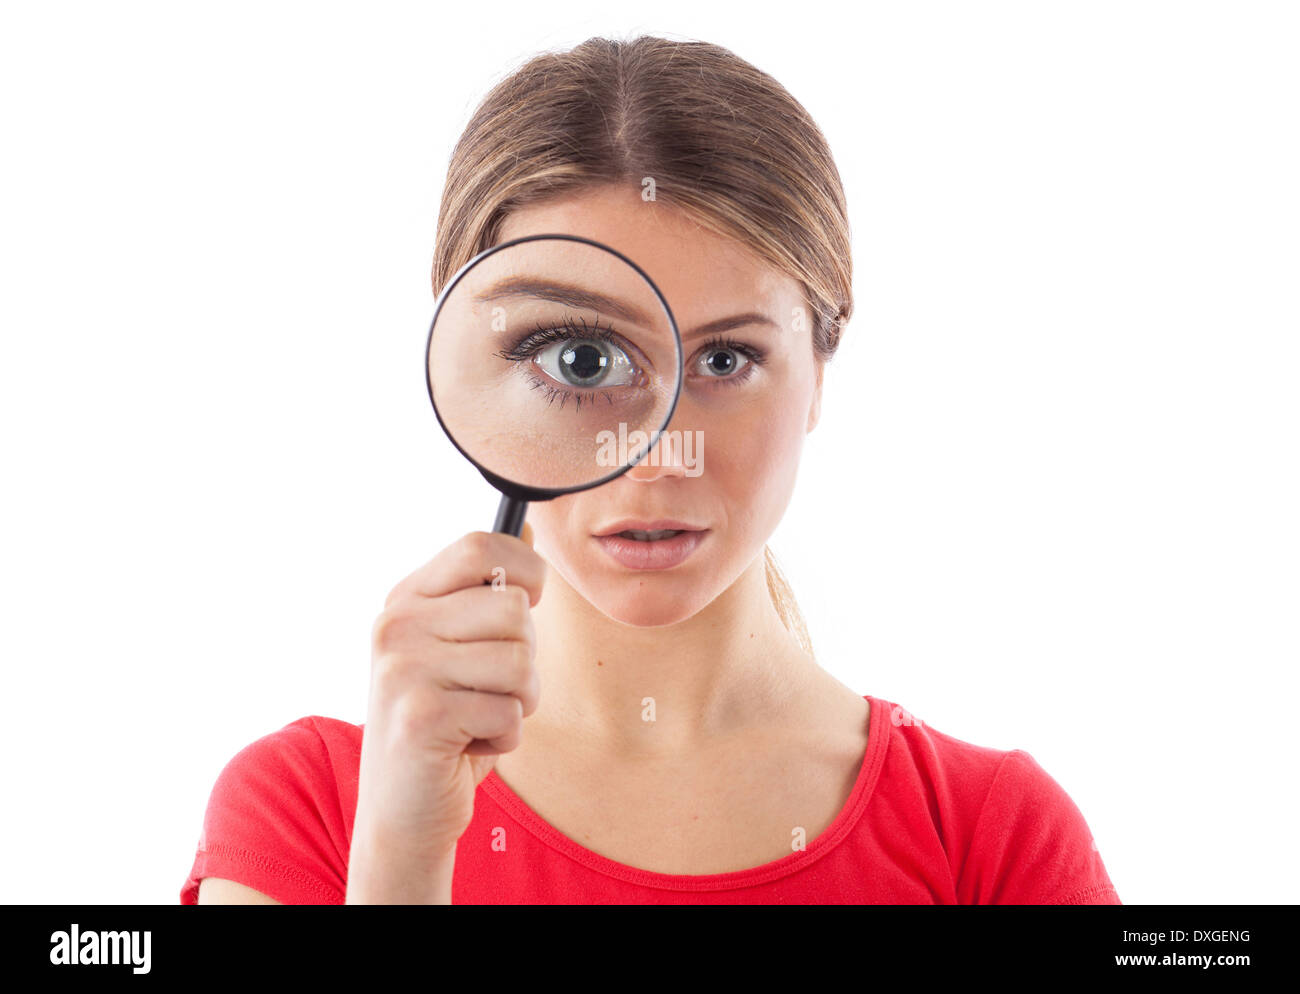 Beautiful woman looking through a magnifying glass, isolated on white - Stock Image